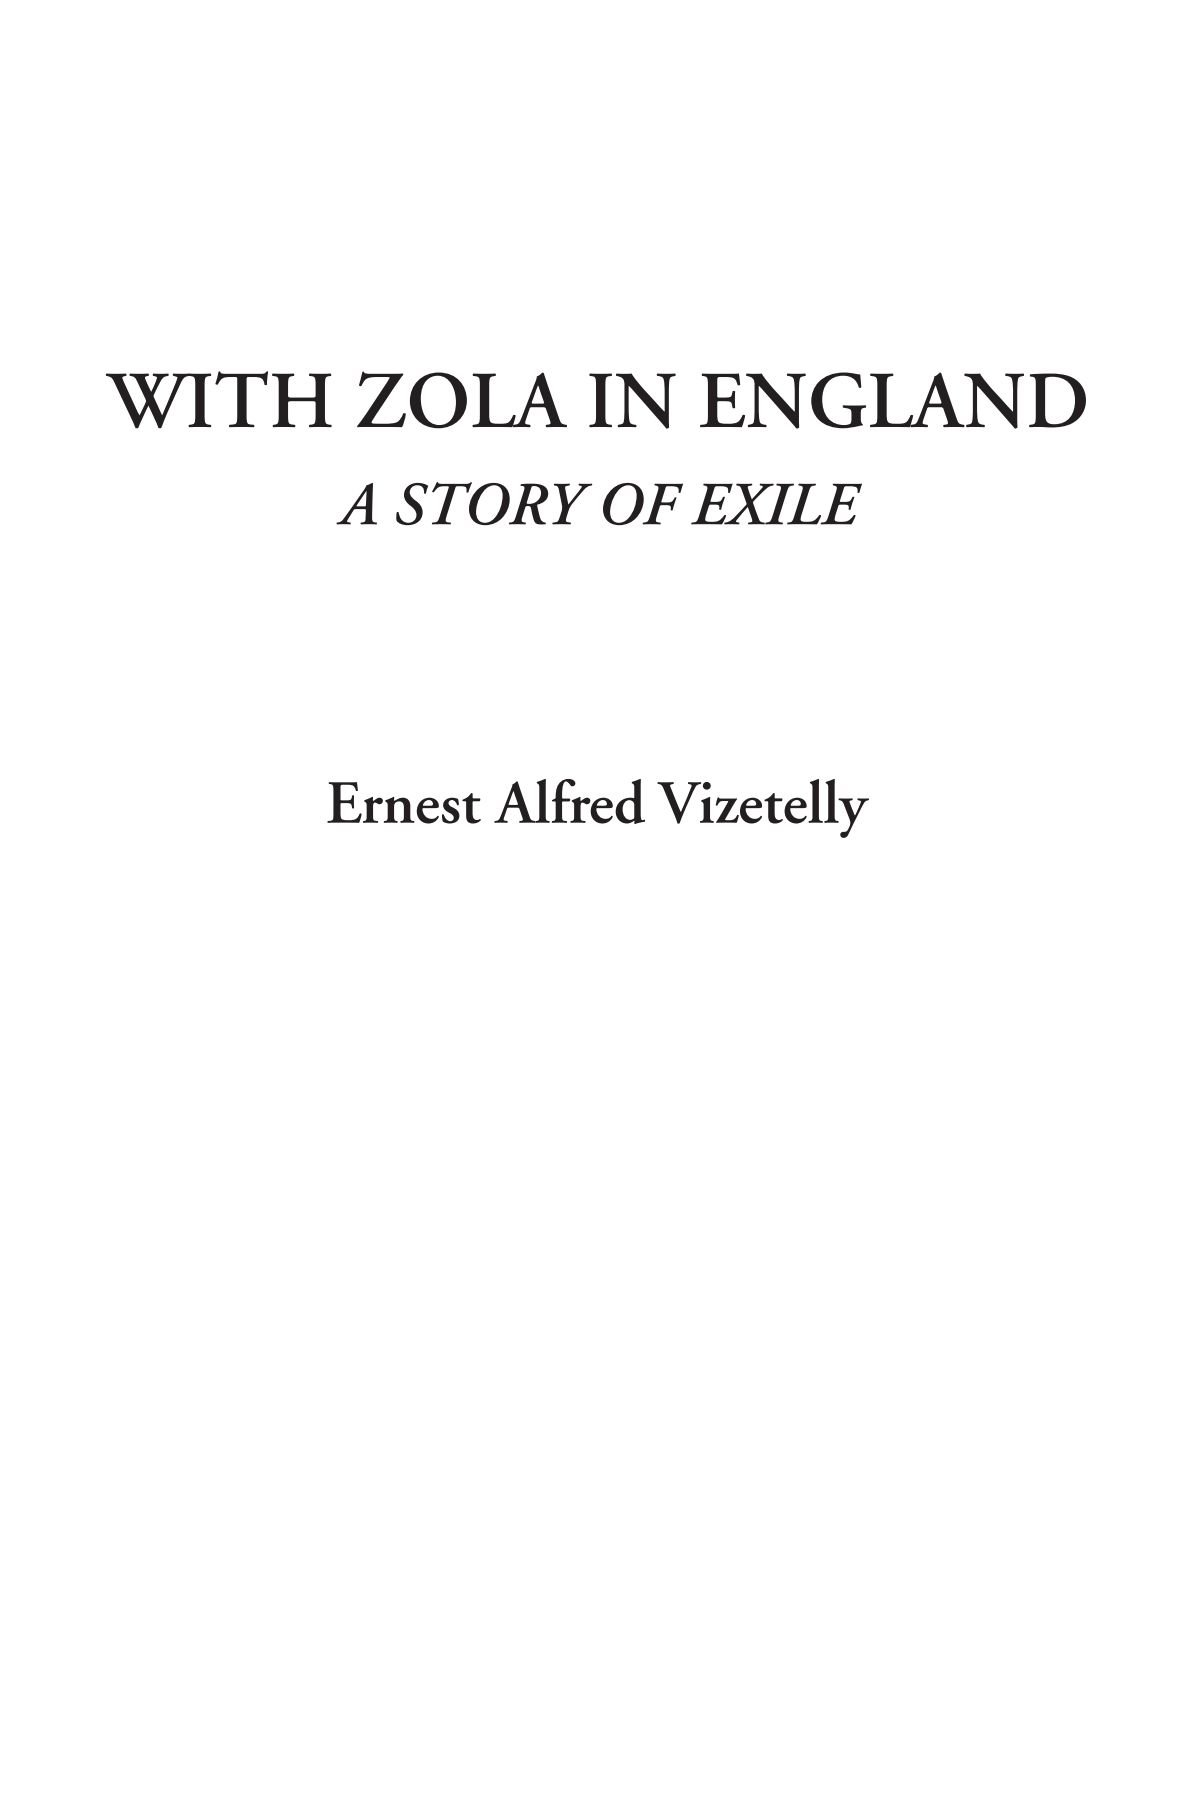 Read Online With Zola in England (A Story of Exile) PDF